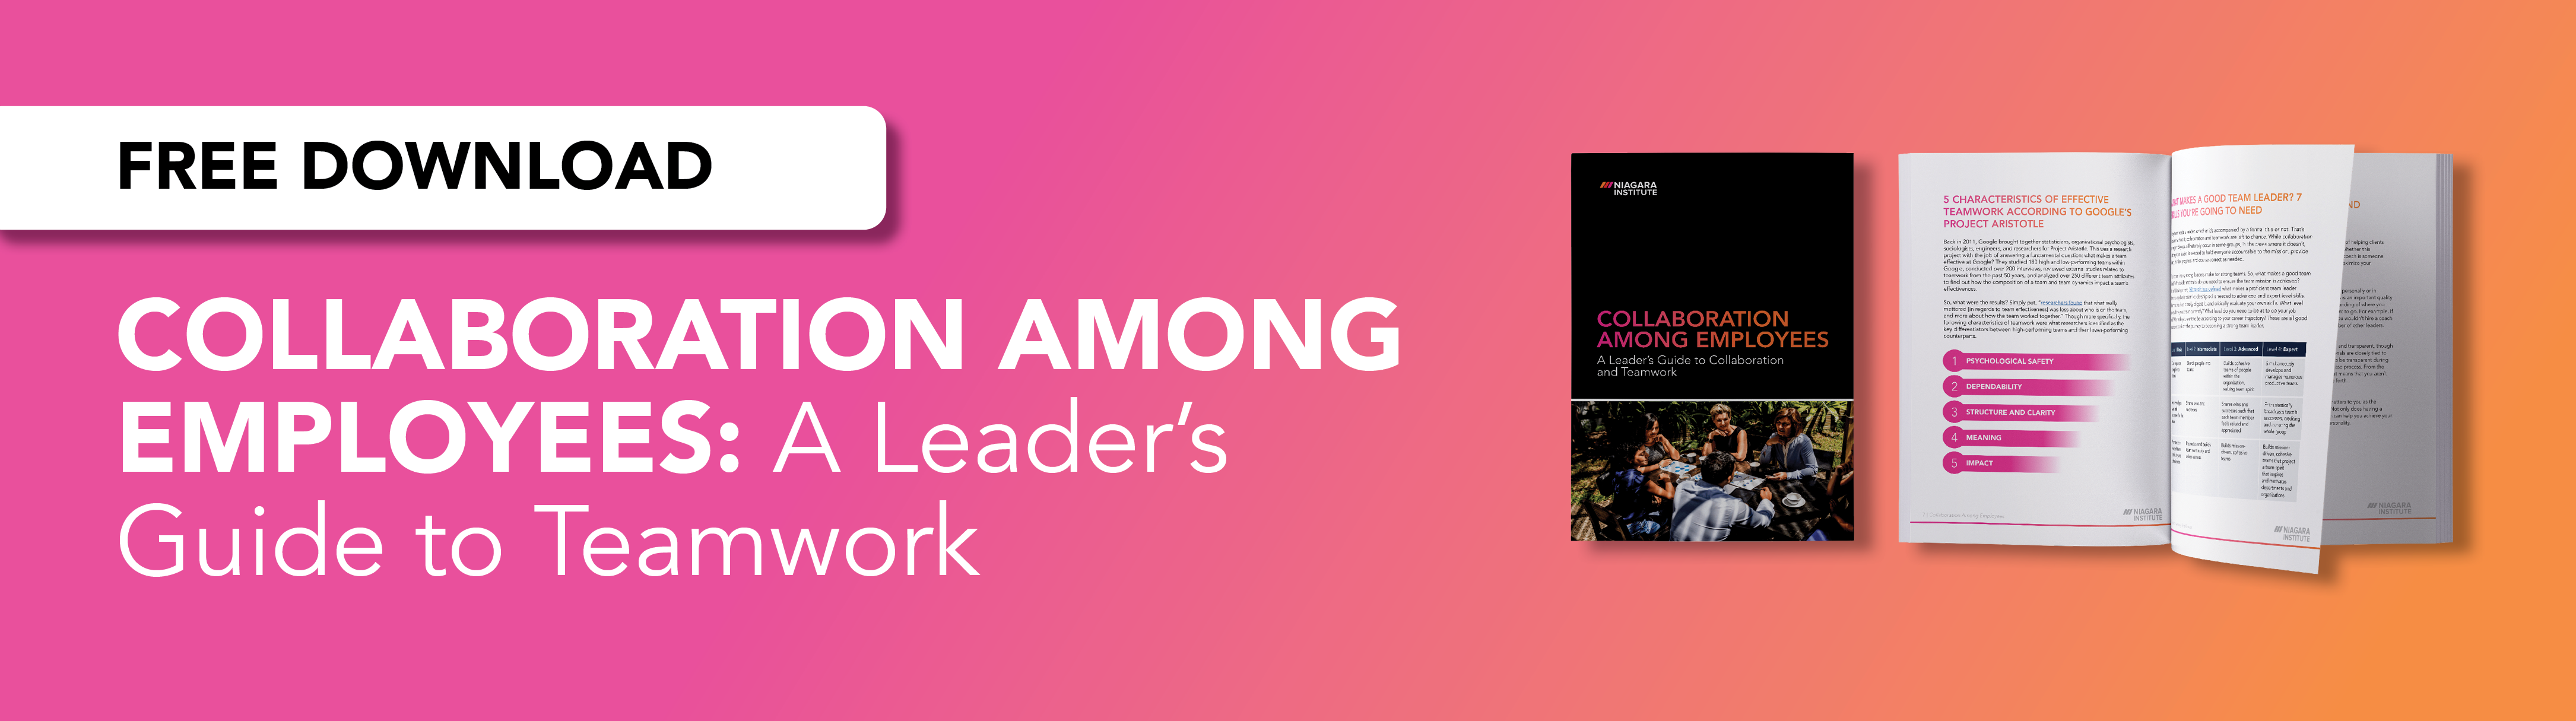 Download the guide for leader's on encouraging collaboration among employees